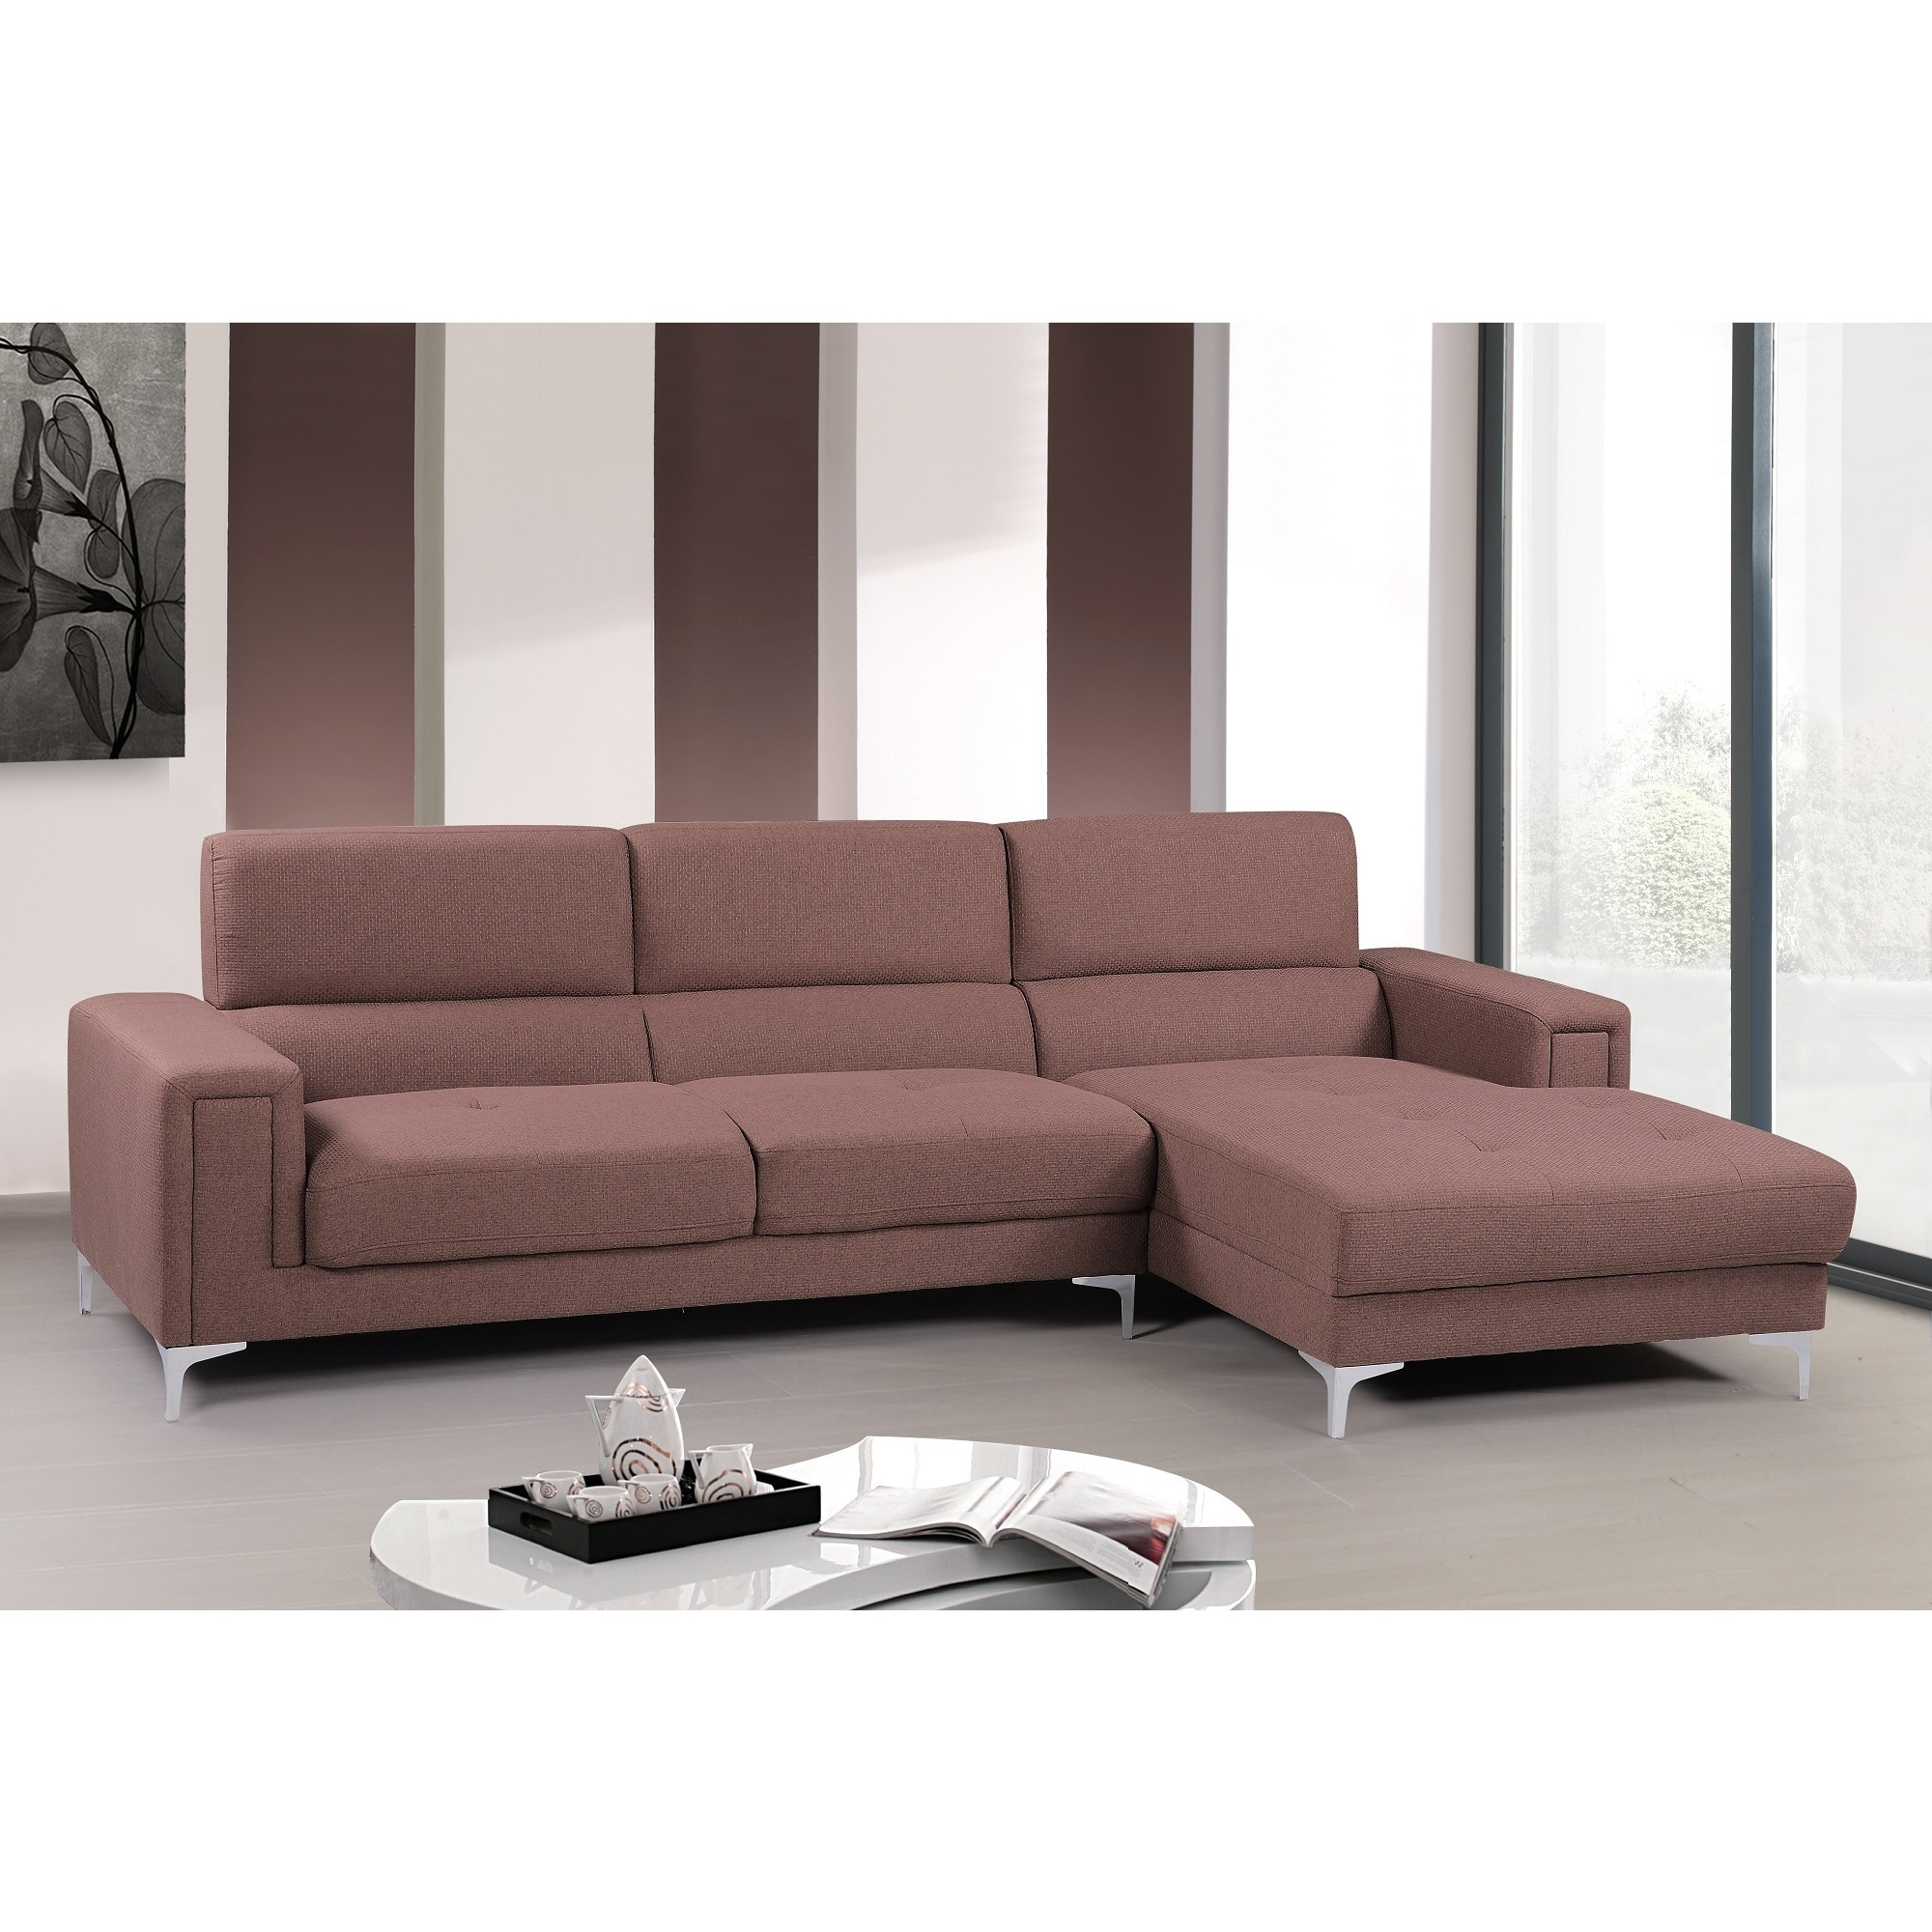 Audrey Contemporary Fabric Right-facing Chaise Sectional Sofa Set